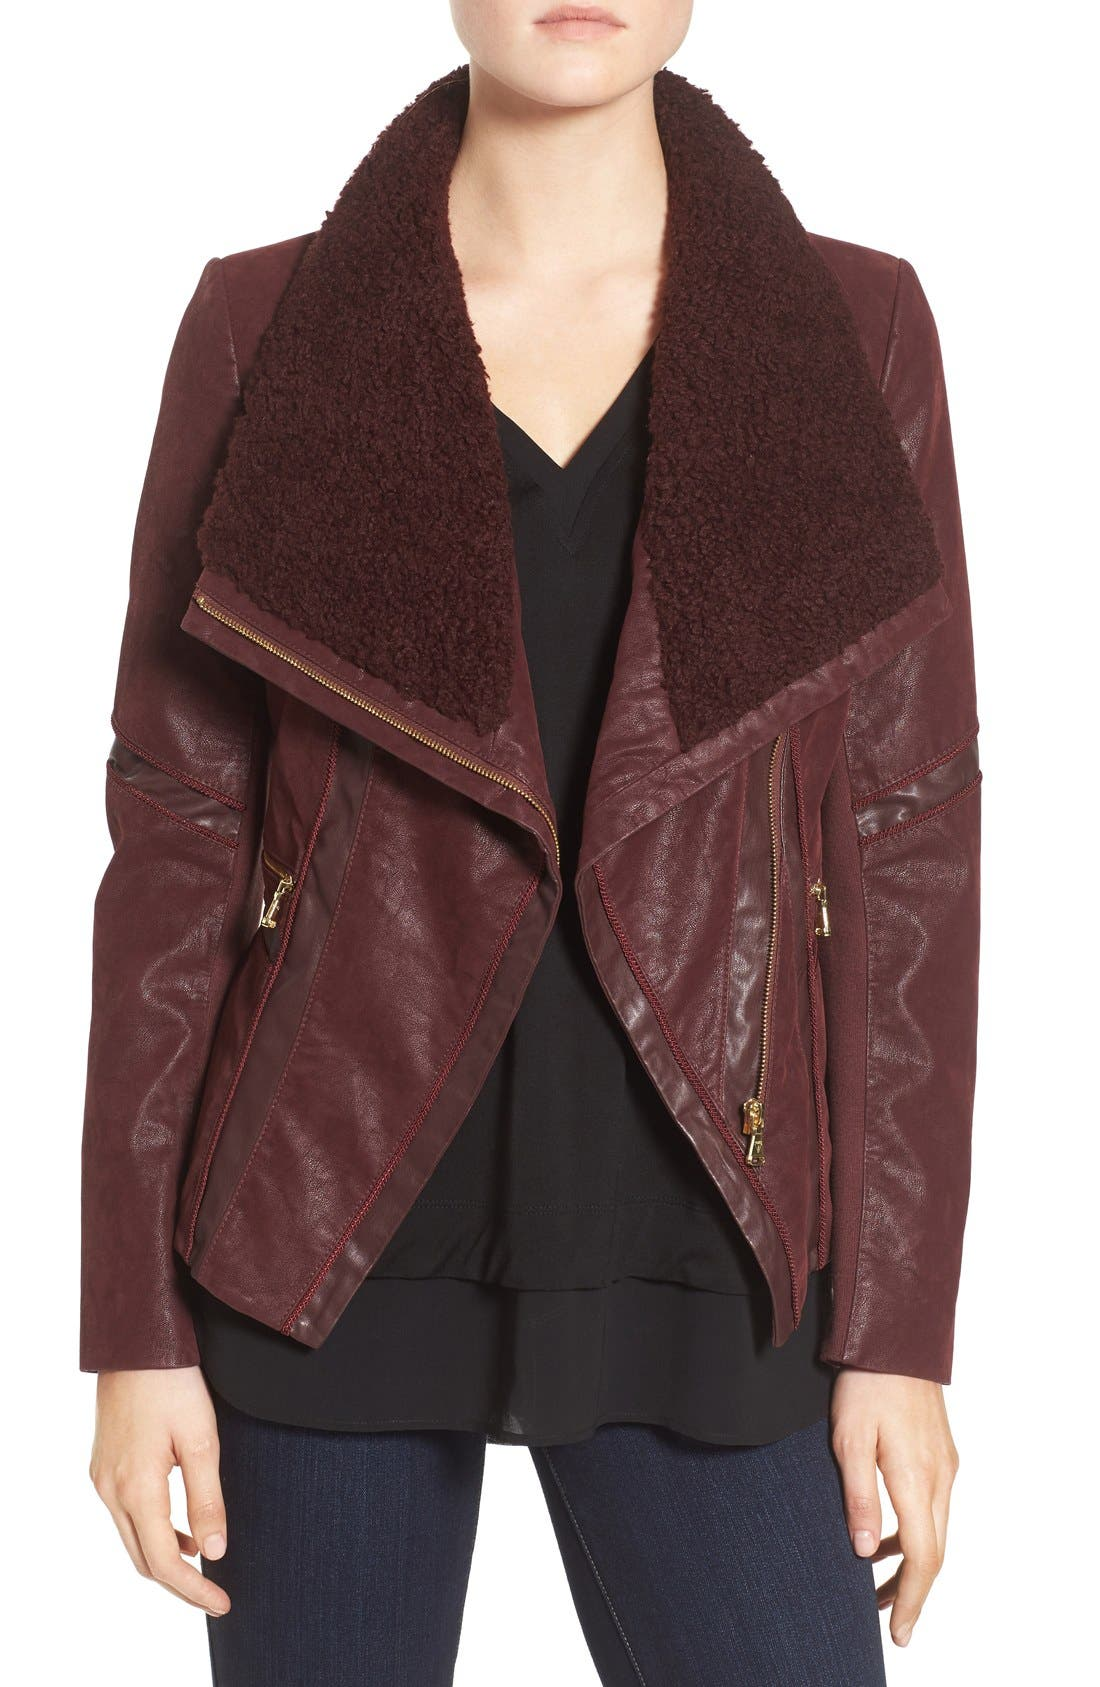 Alternate Image 1 Selected - GUESS Faux Leather Moto Jacket with Faux Fur Trim